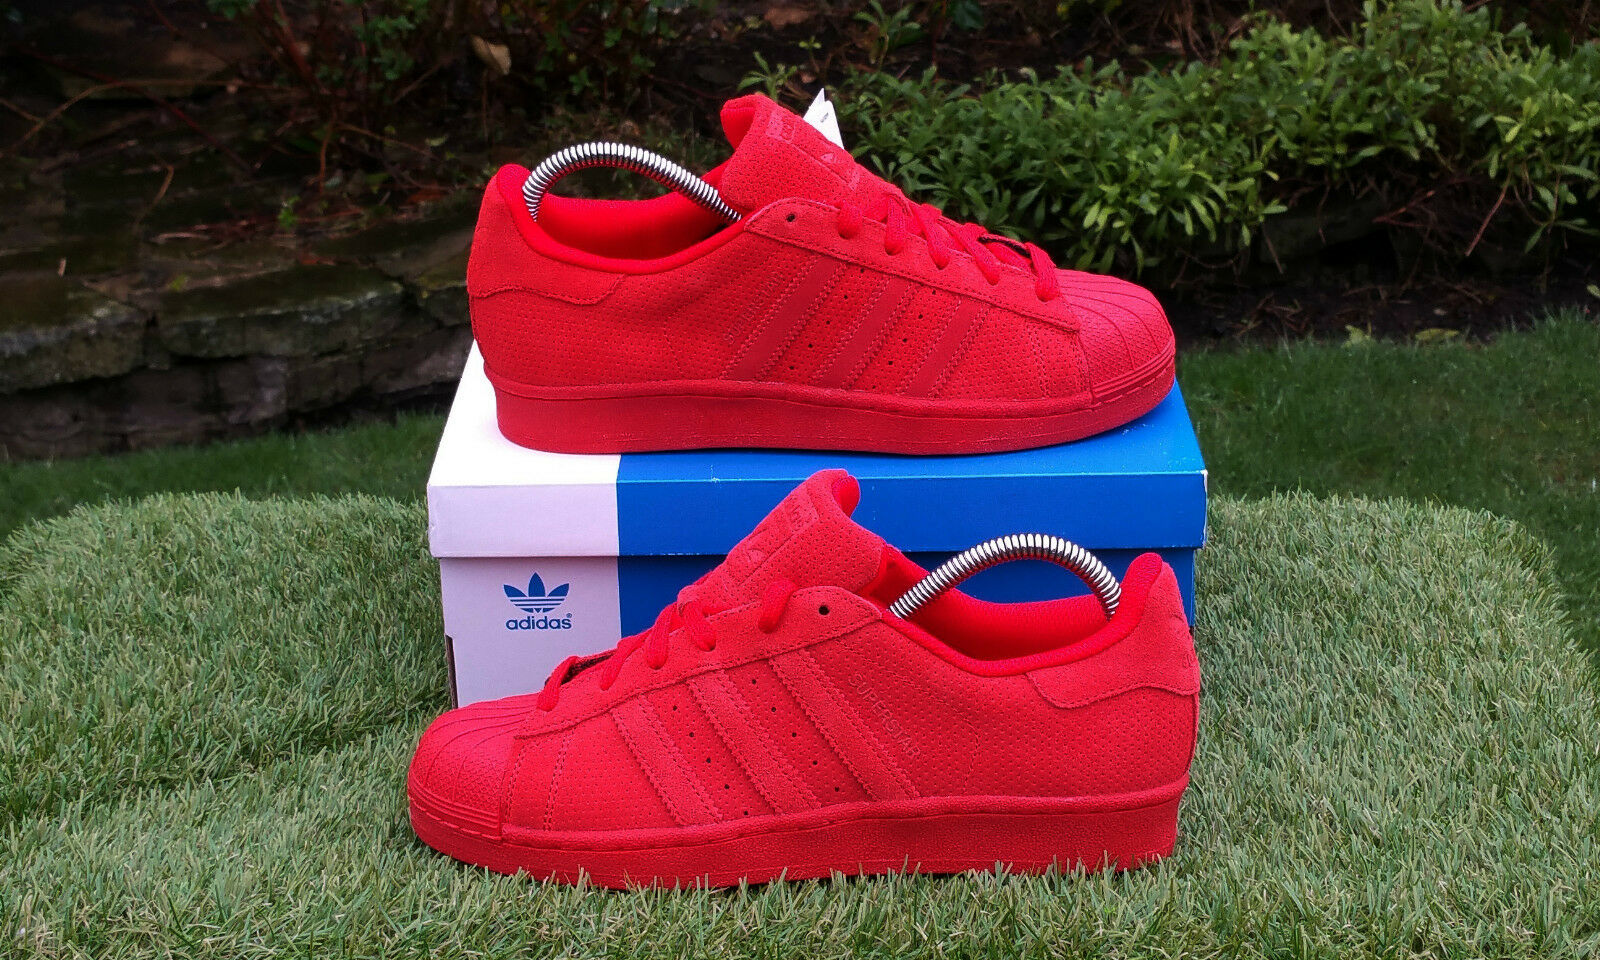 BNWB & Genuine Adidas Originals Suede Superstar RT Triple Red Suede Originals Trainers efd913